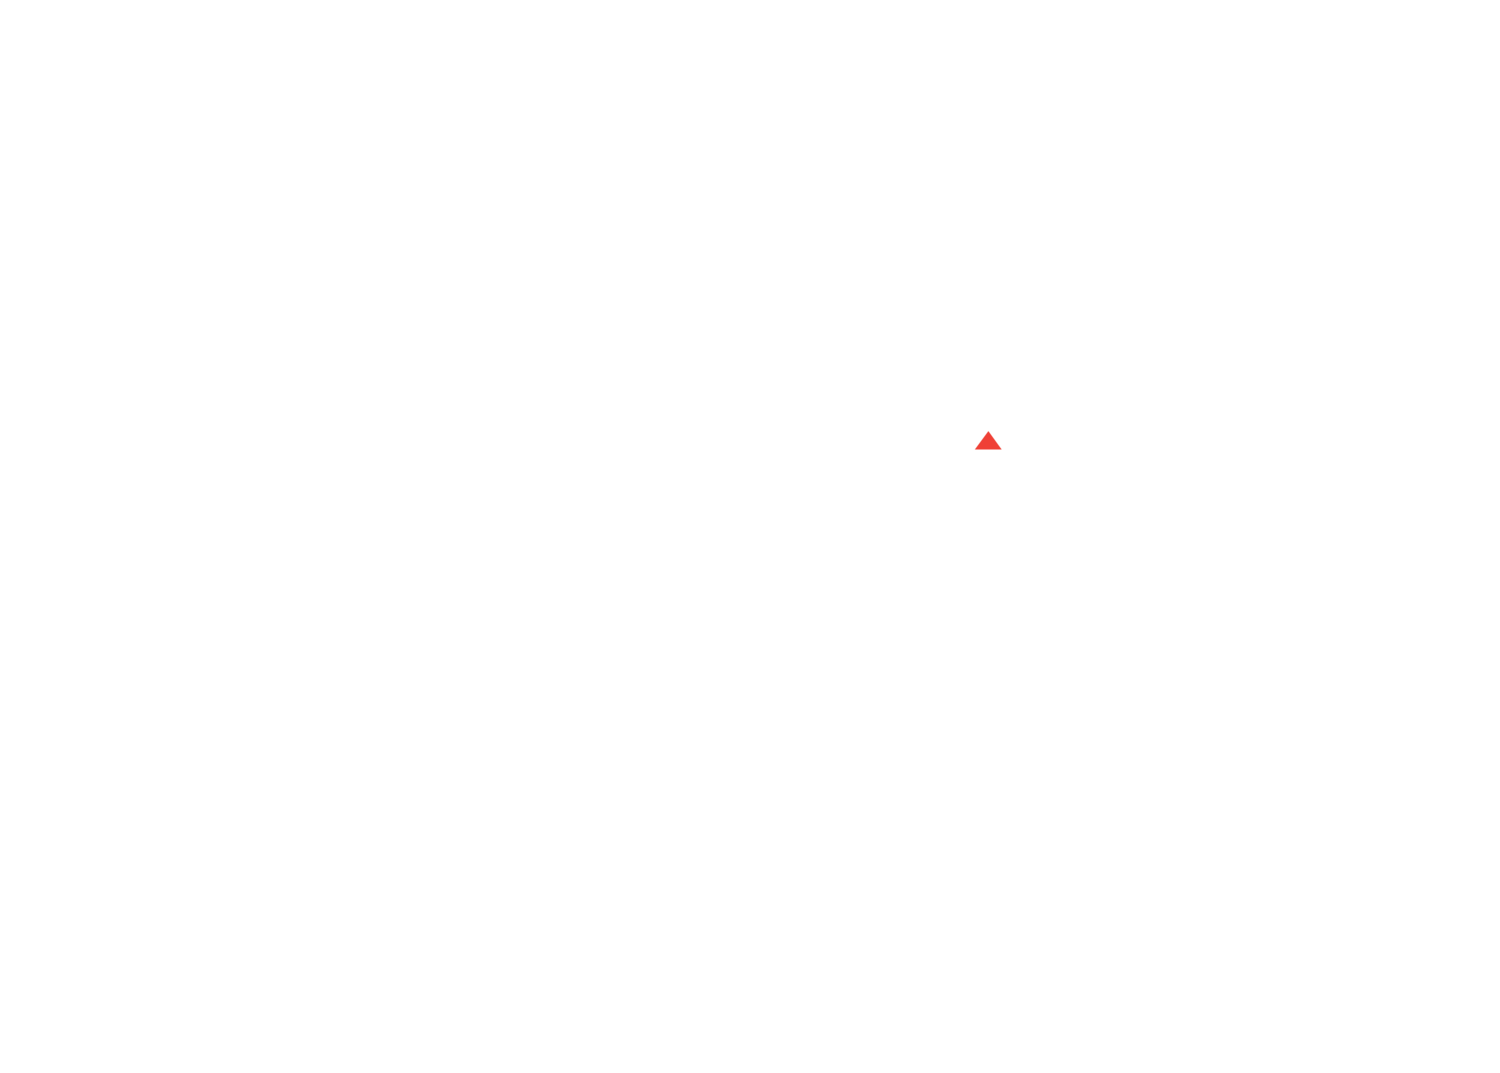 CFER―Conservatives for Environmental Reform